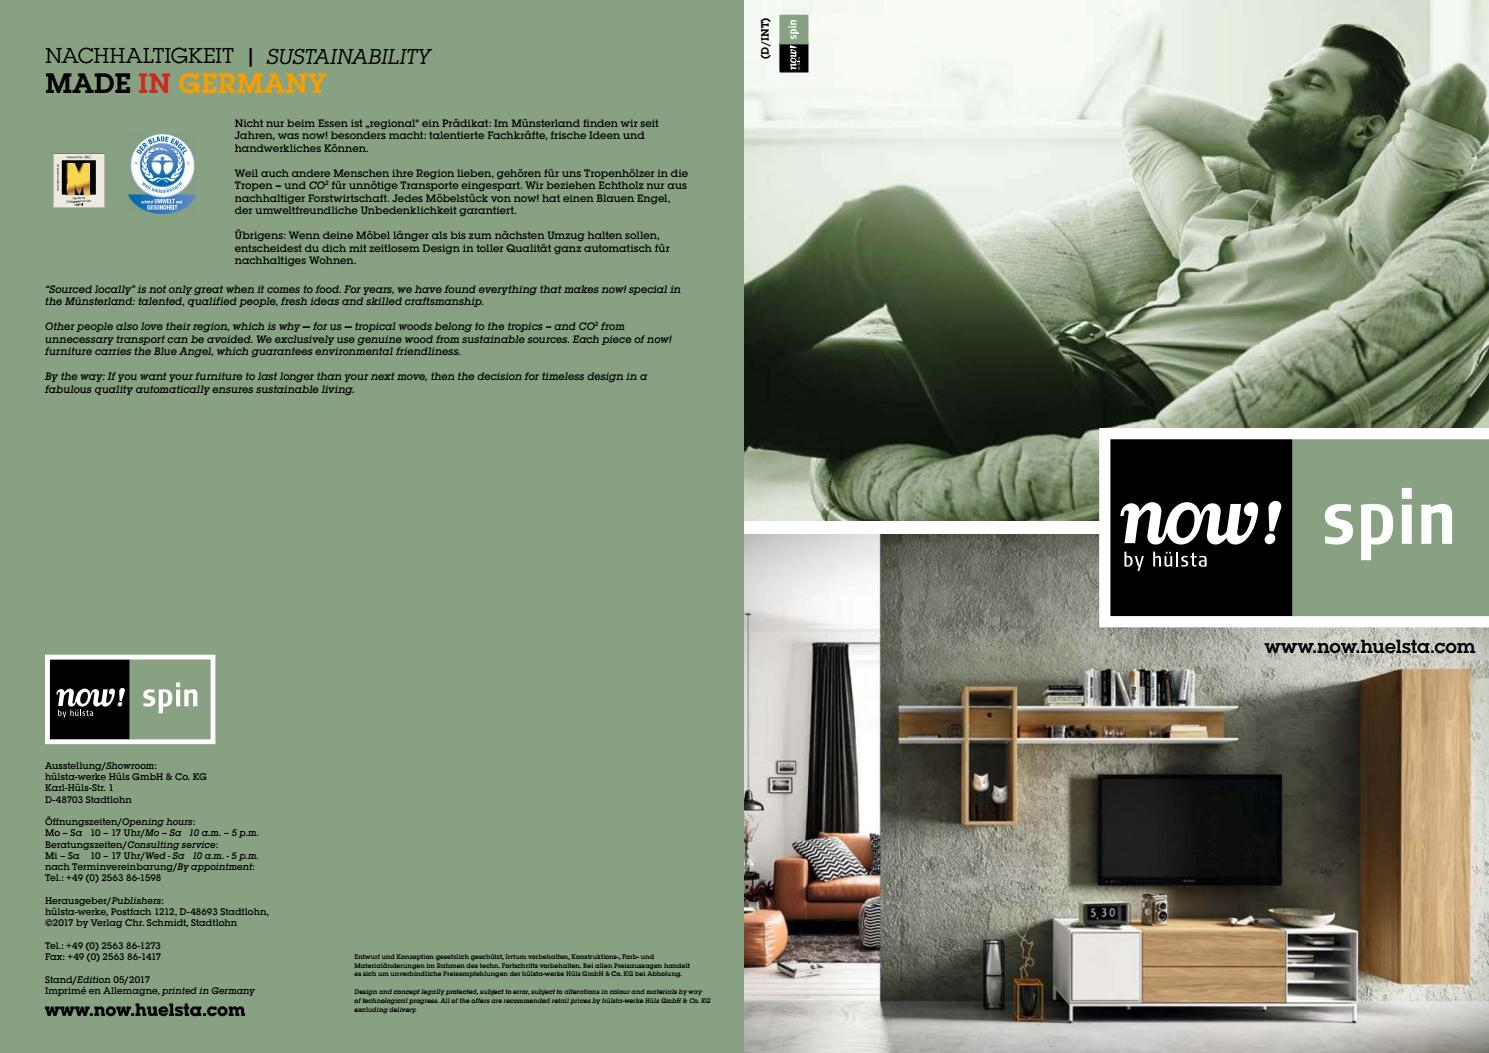 Hülsta Now Spin Brochure By Innoconcept Design Issuu